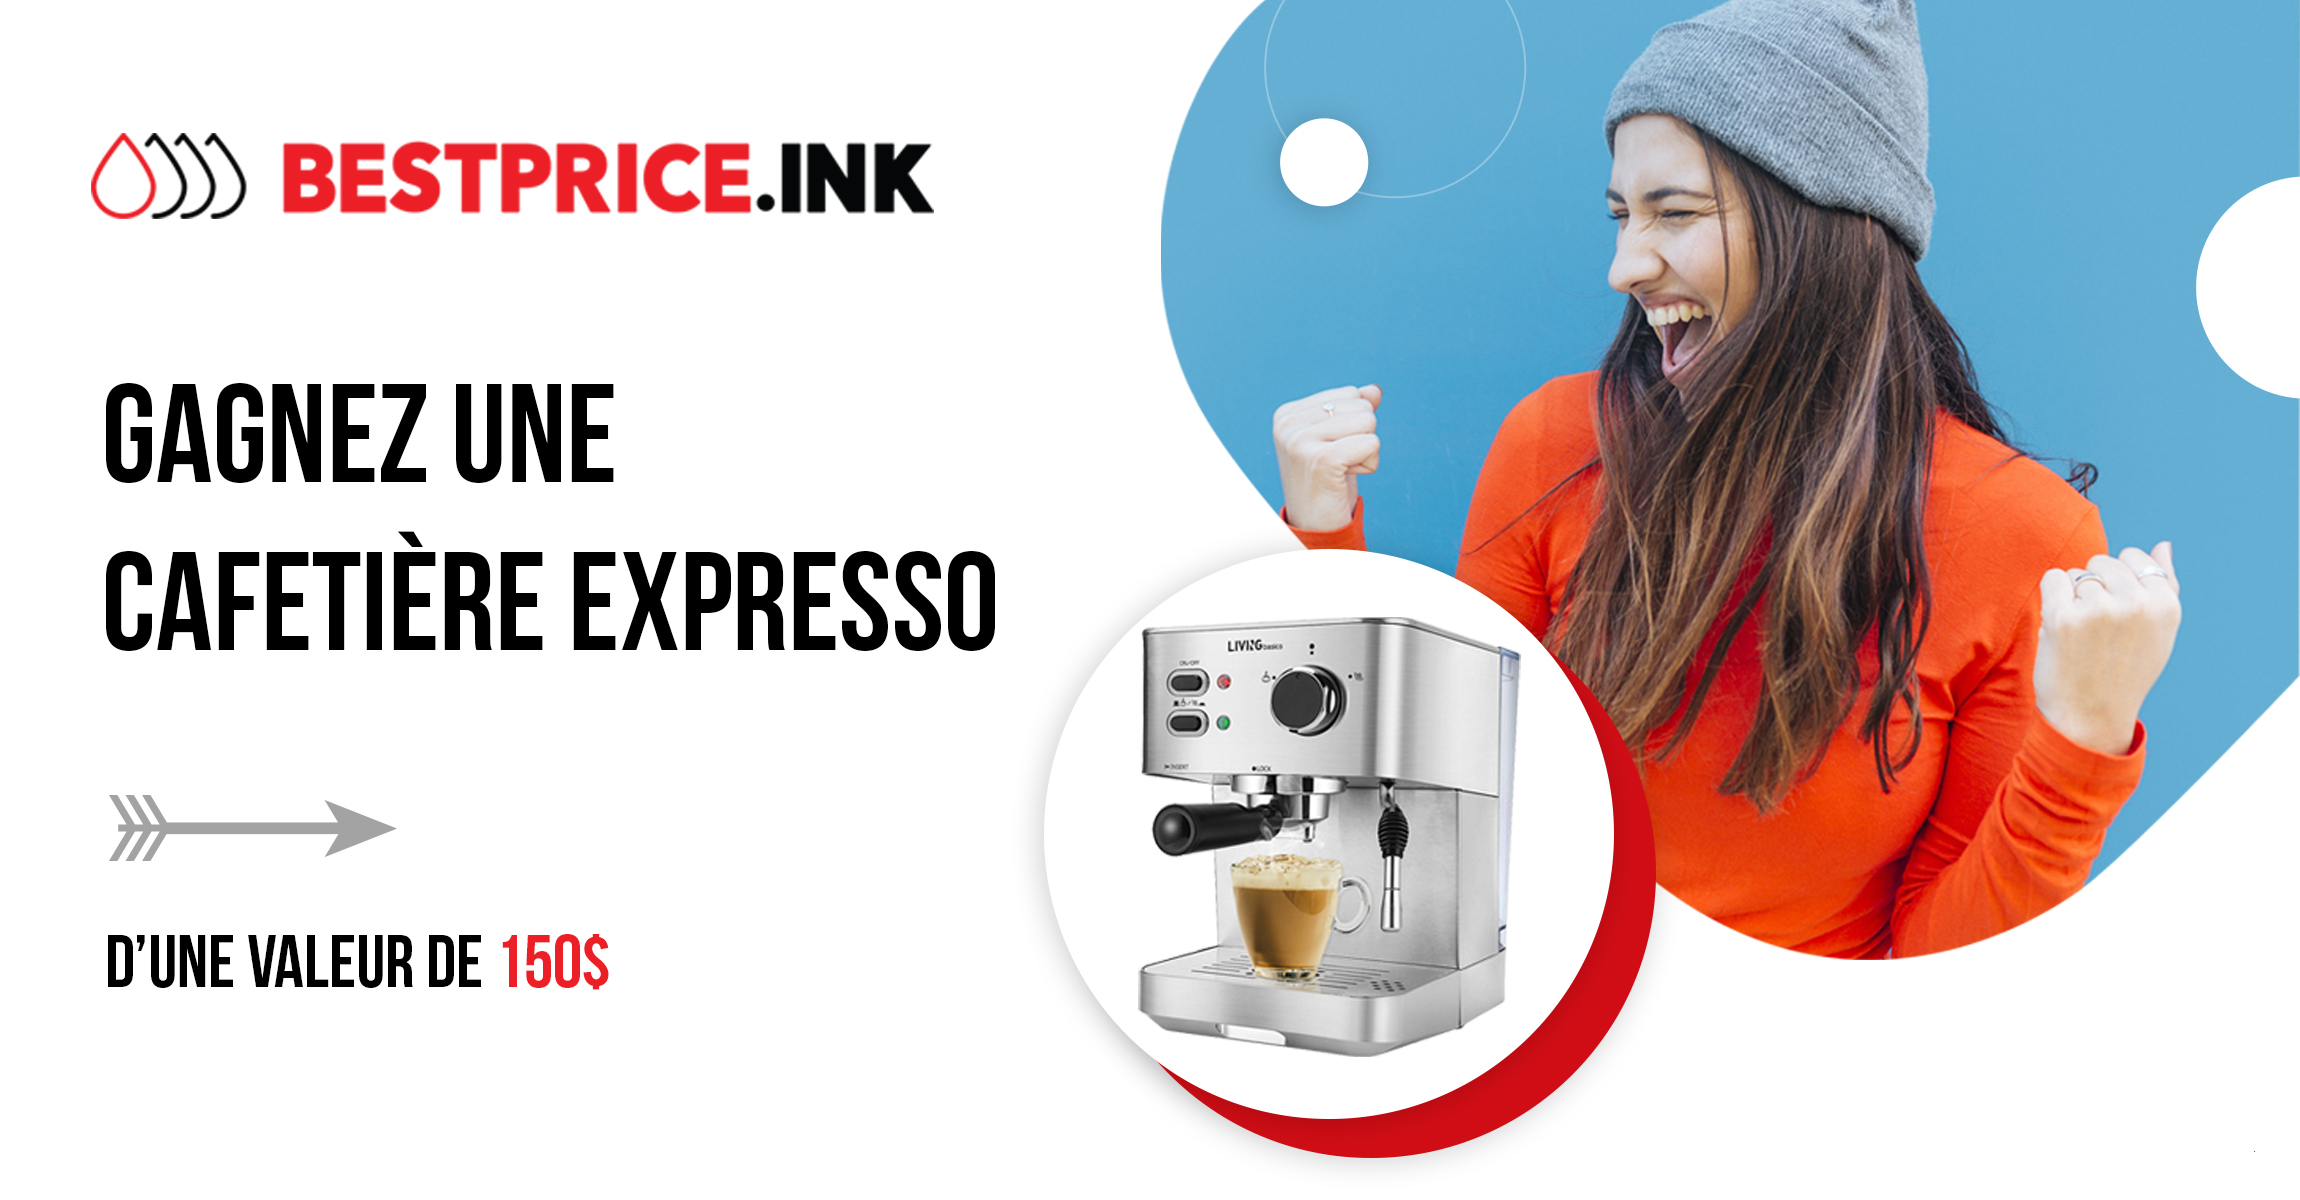 Concours Espresso - Best Price.ink